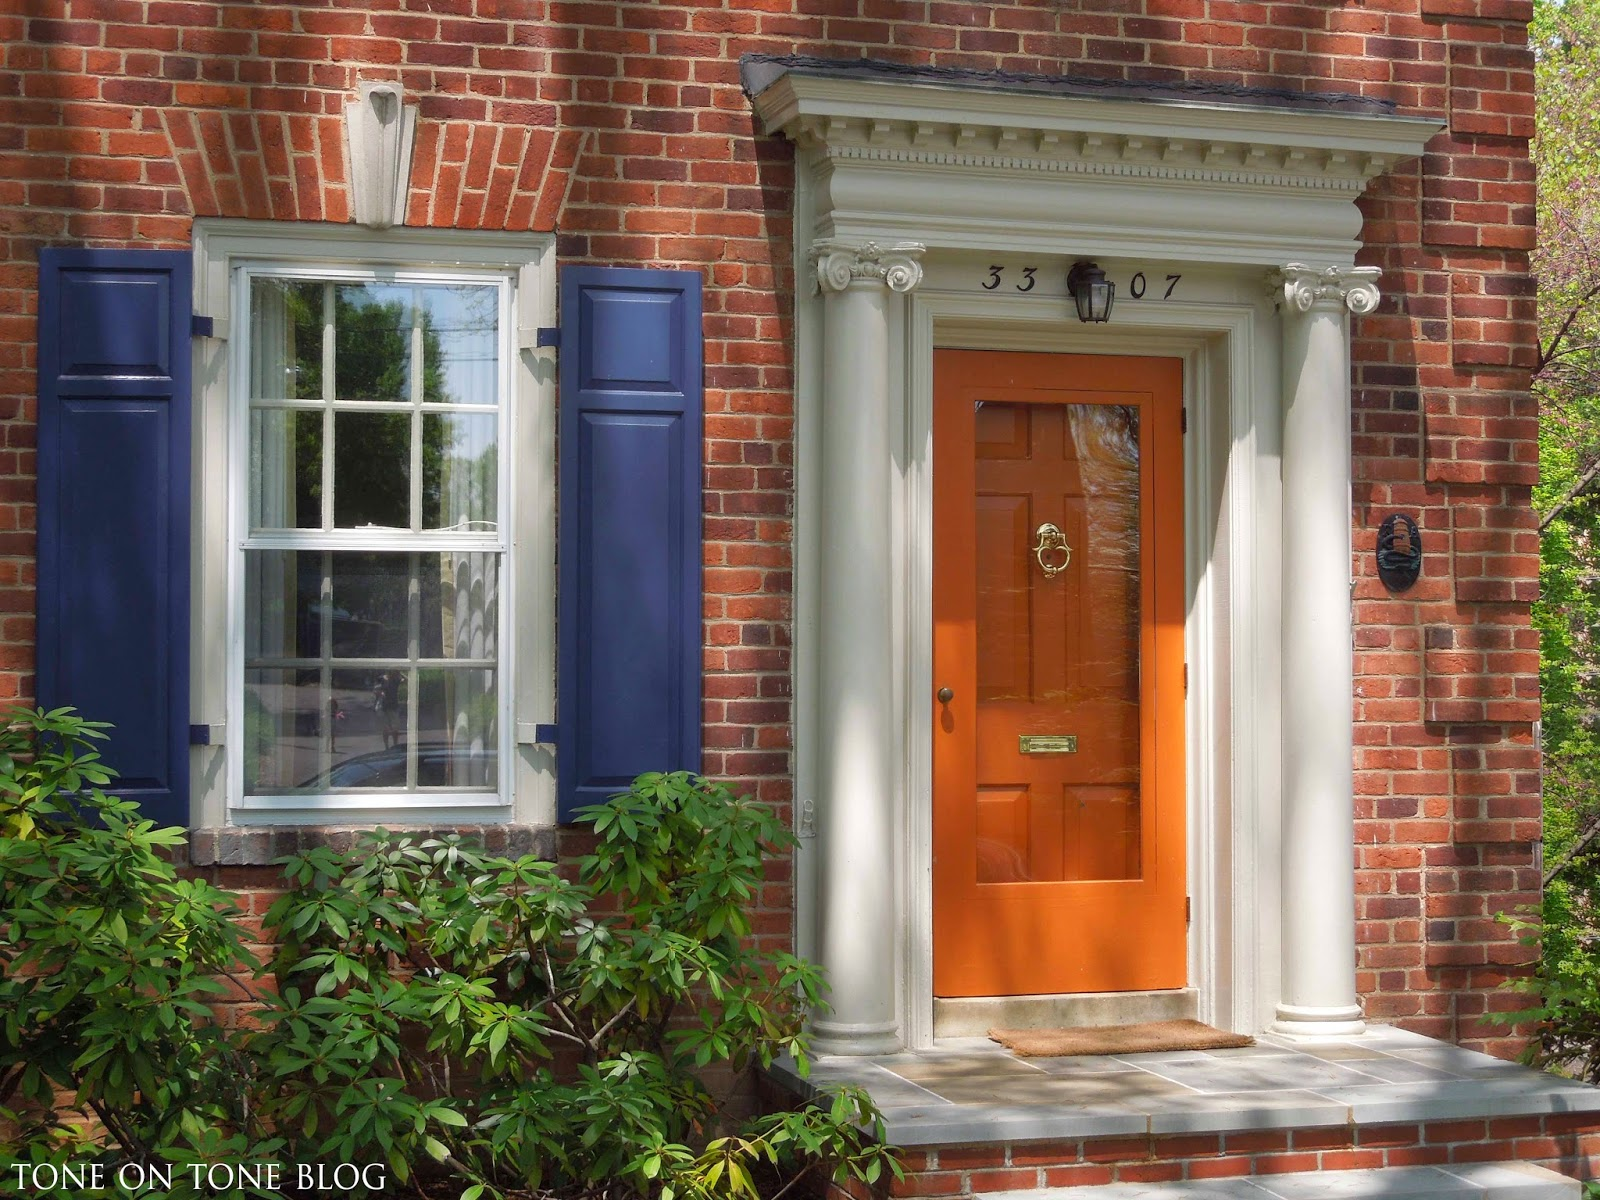 Tone on tone storm doors ideas and inspirations - Front door color ideas inspirations can use ...